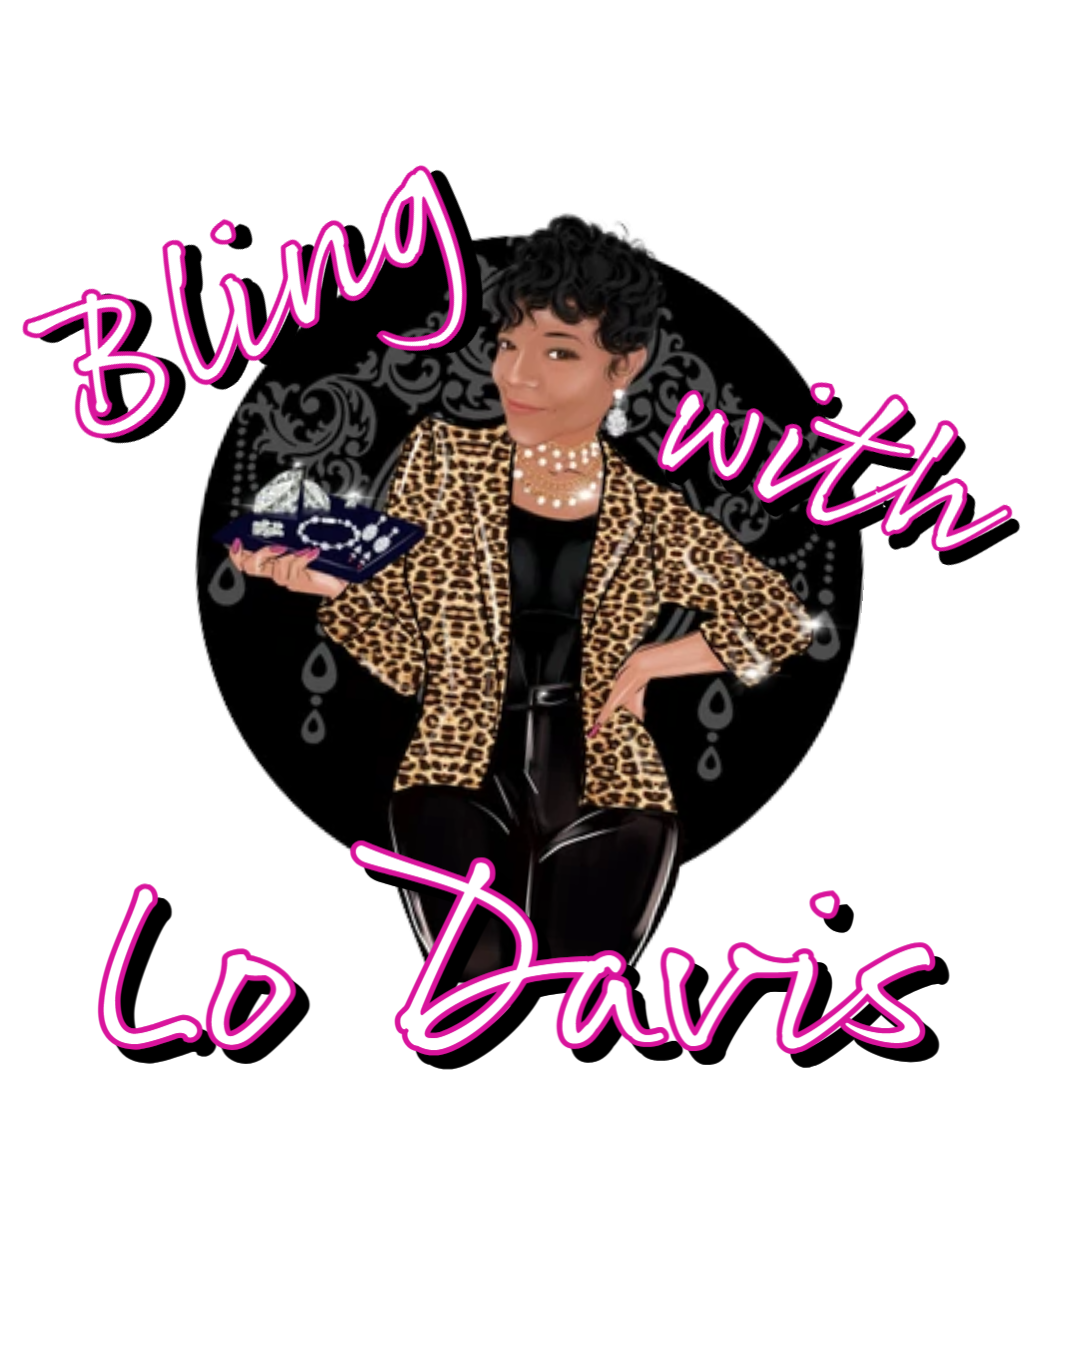 Bling with Lo Davis